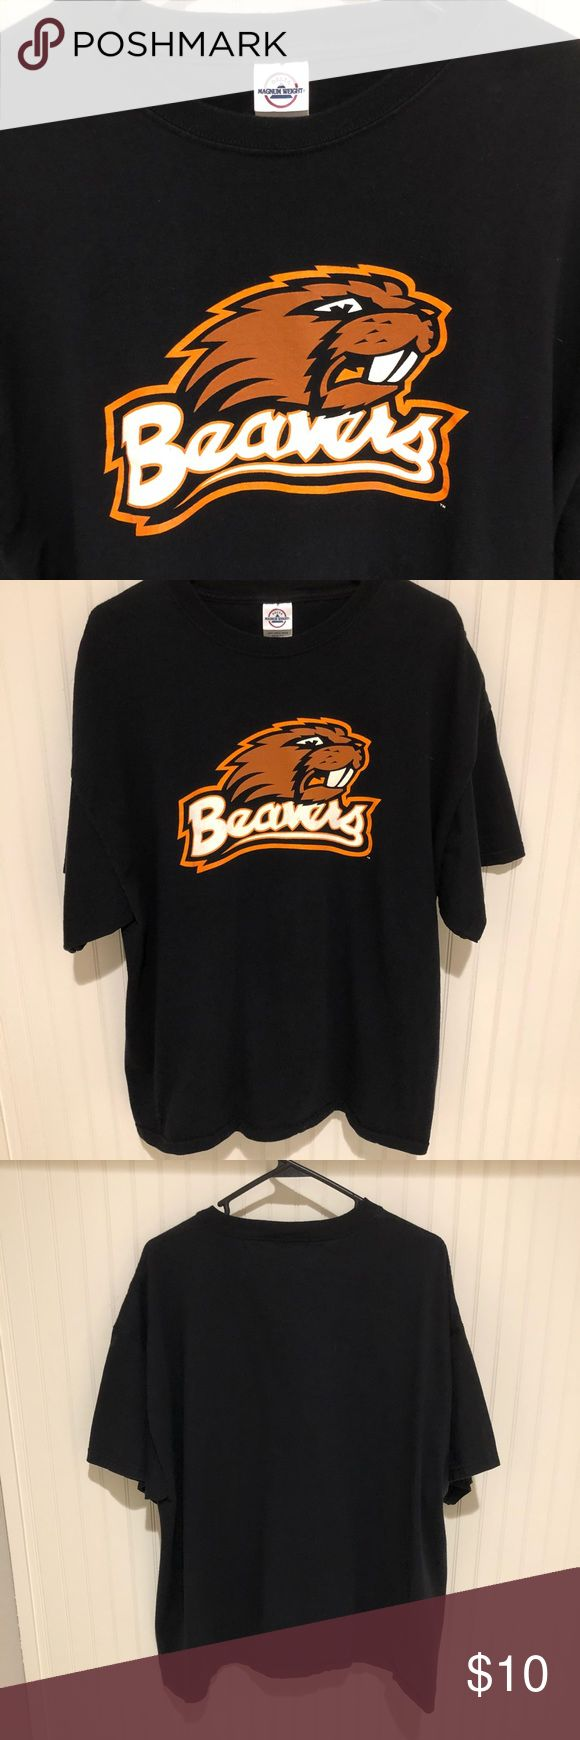 Oregon State Beavers Tee Oregon State University Black Tee with the Beaver logo in the front. 100% Preshrunk Cotton. Good used condition. Delta Magnum Weight Shirts Tees - Short Sleeve